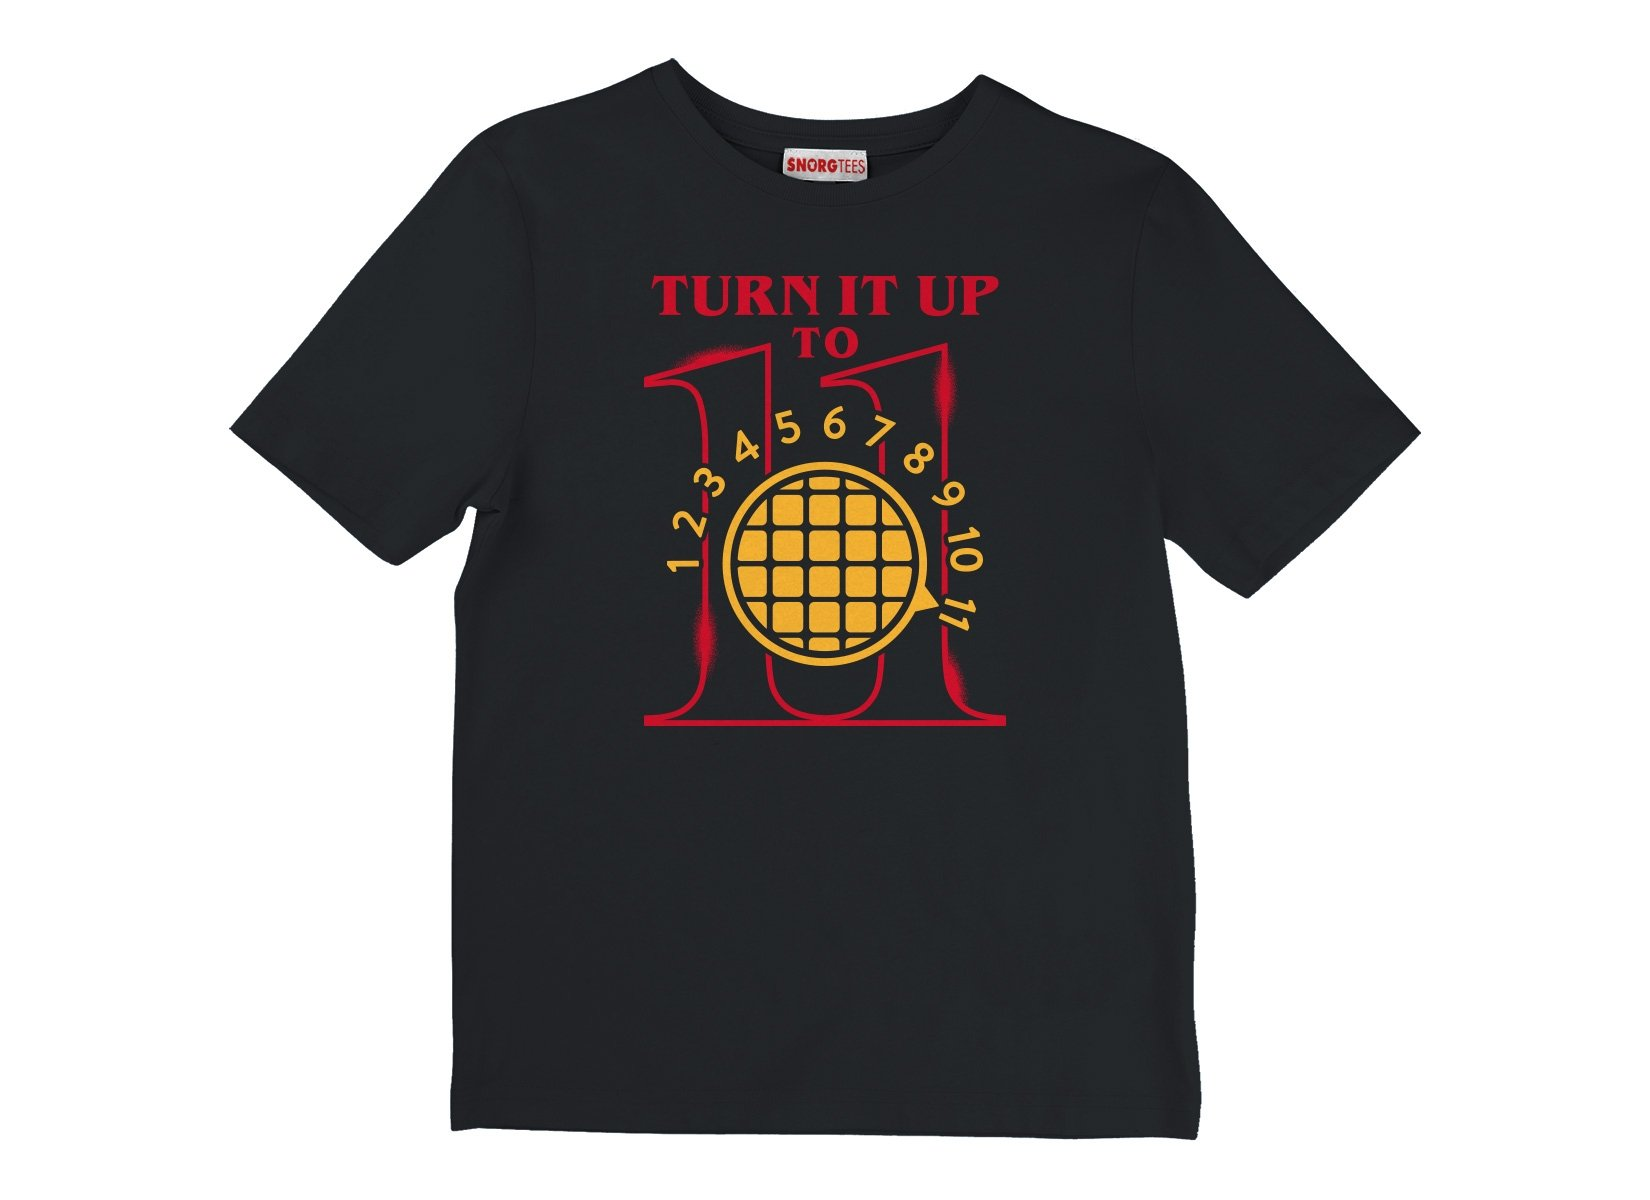 Turn It Up To 11 on Kids T-Shirt